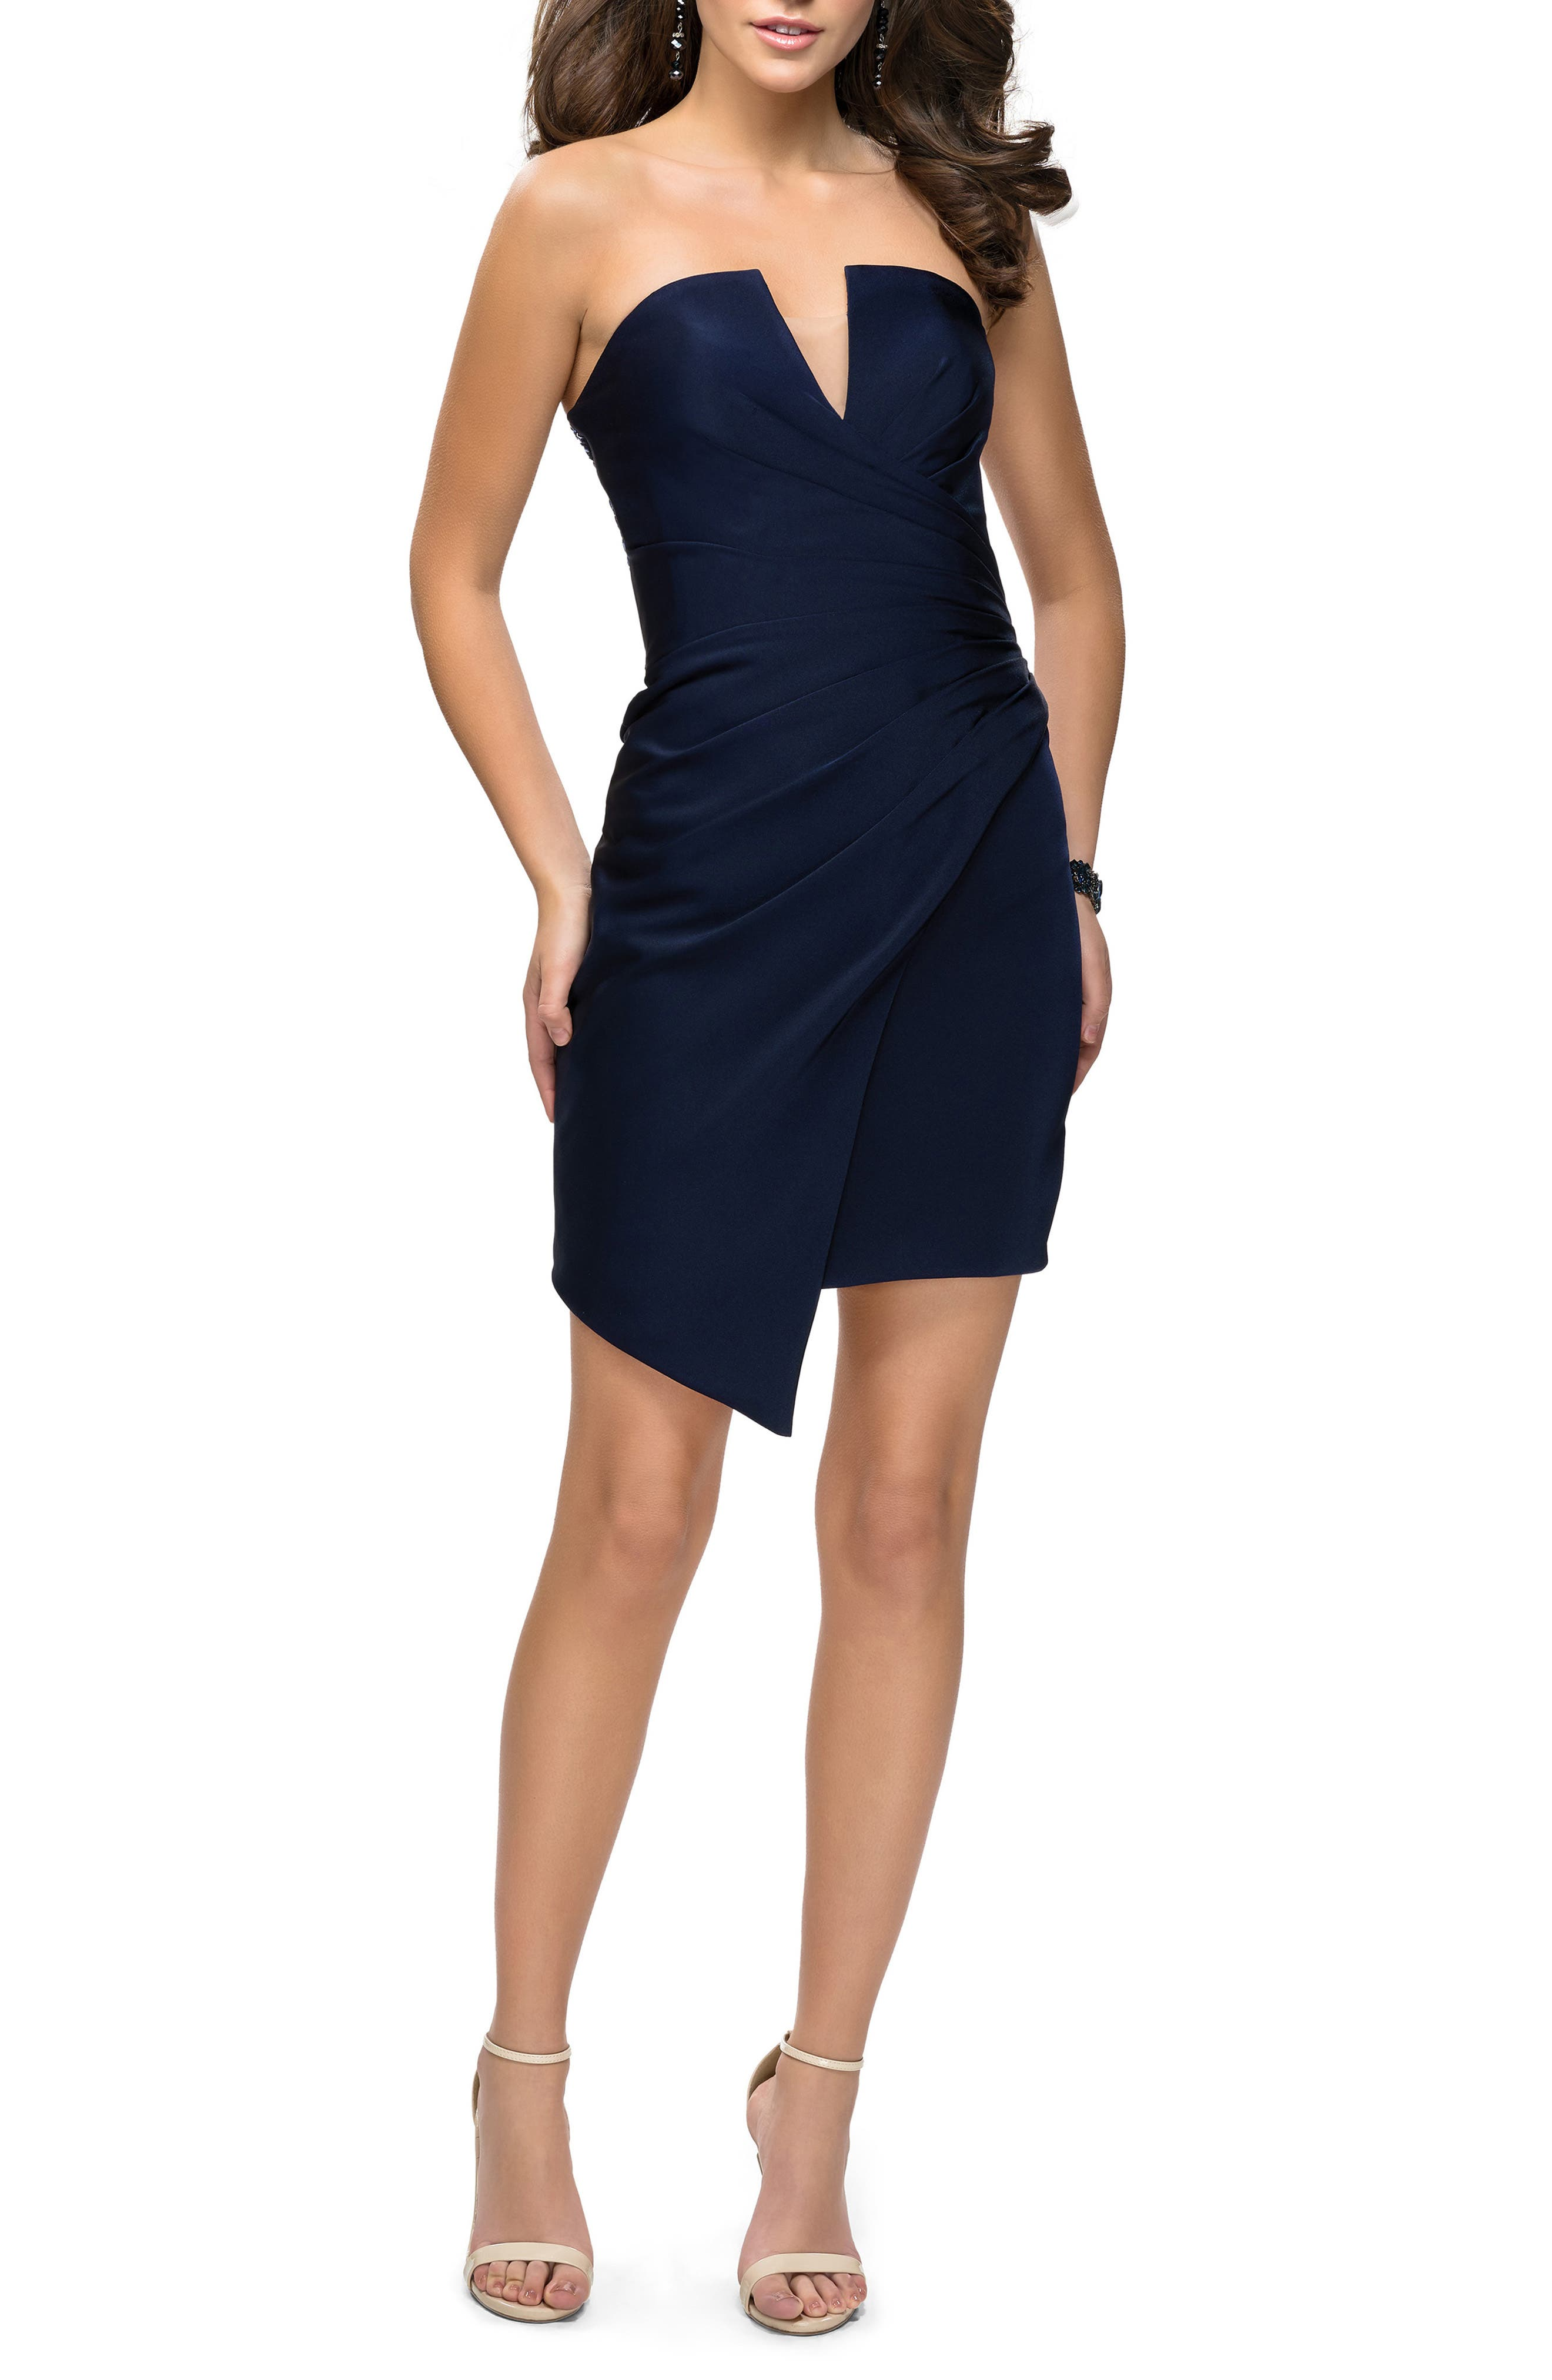 La Femme Strapless Asymmetrical Party Dress, Blue